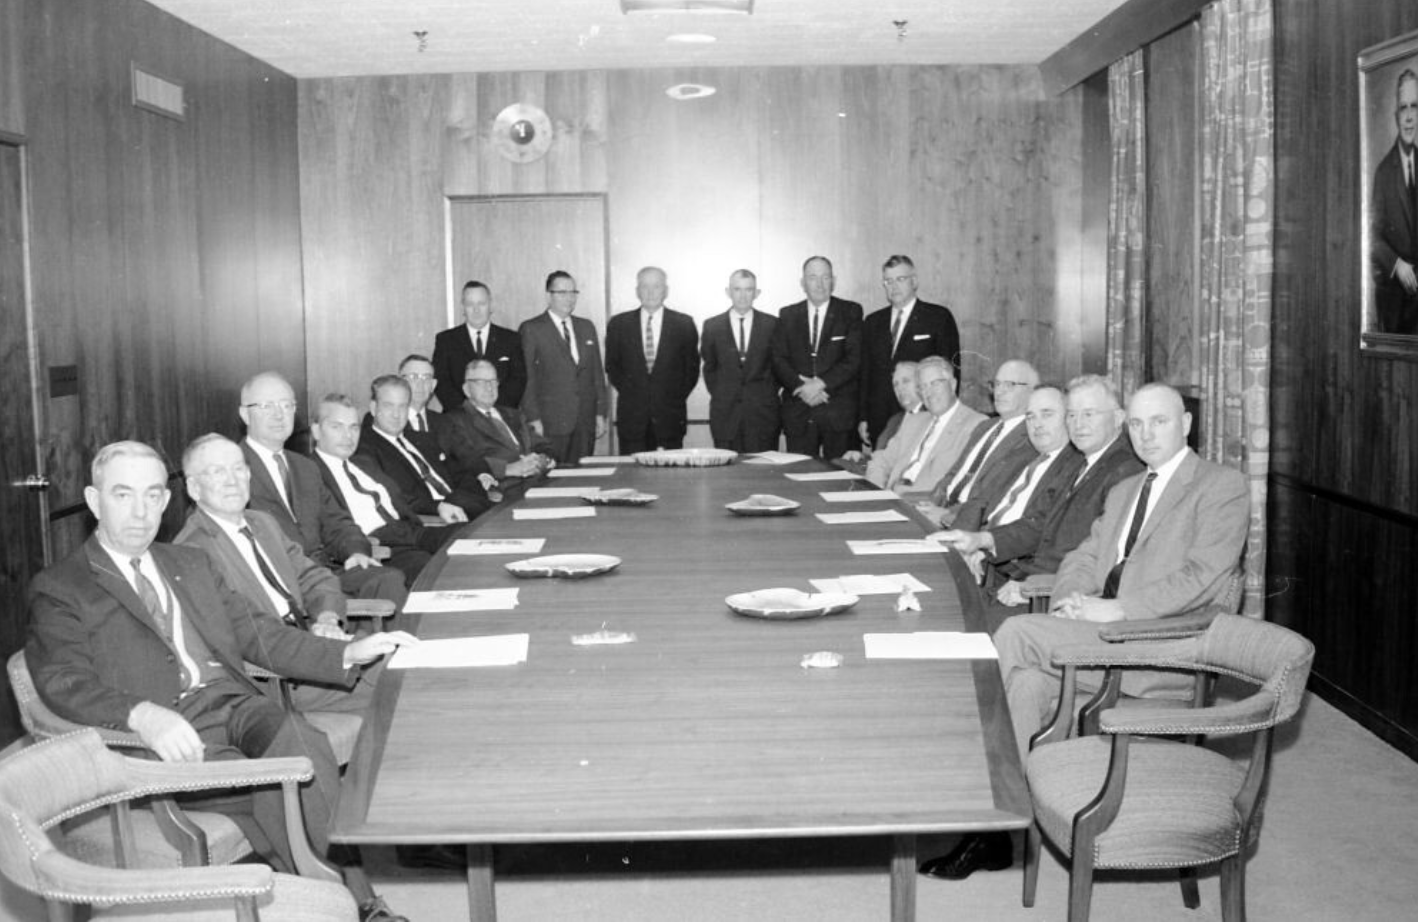 Another picture of men in suits, this one they're all fanned out around a very large table in a wood paneled room